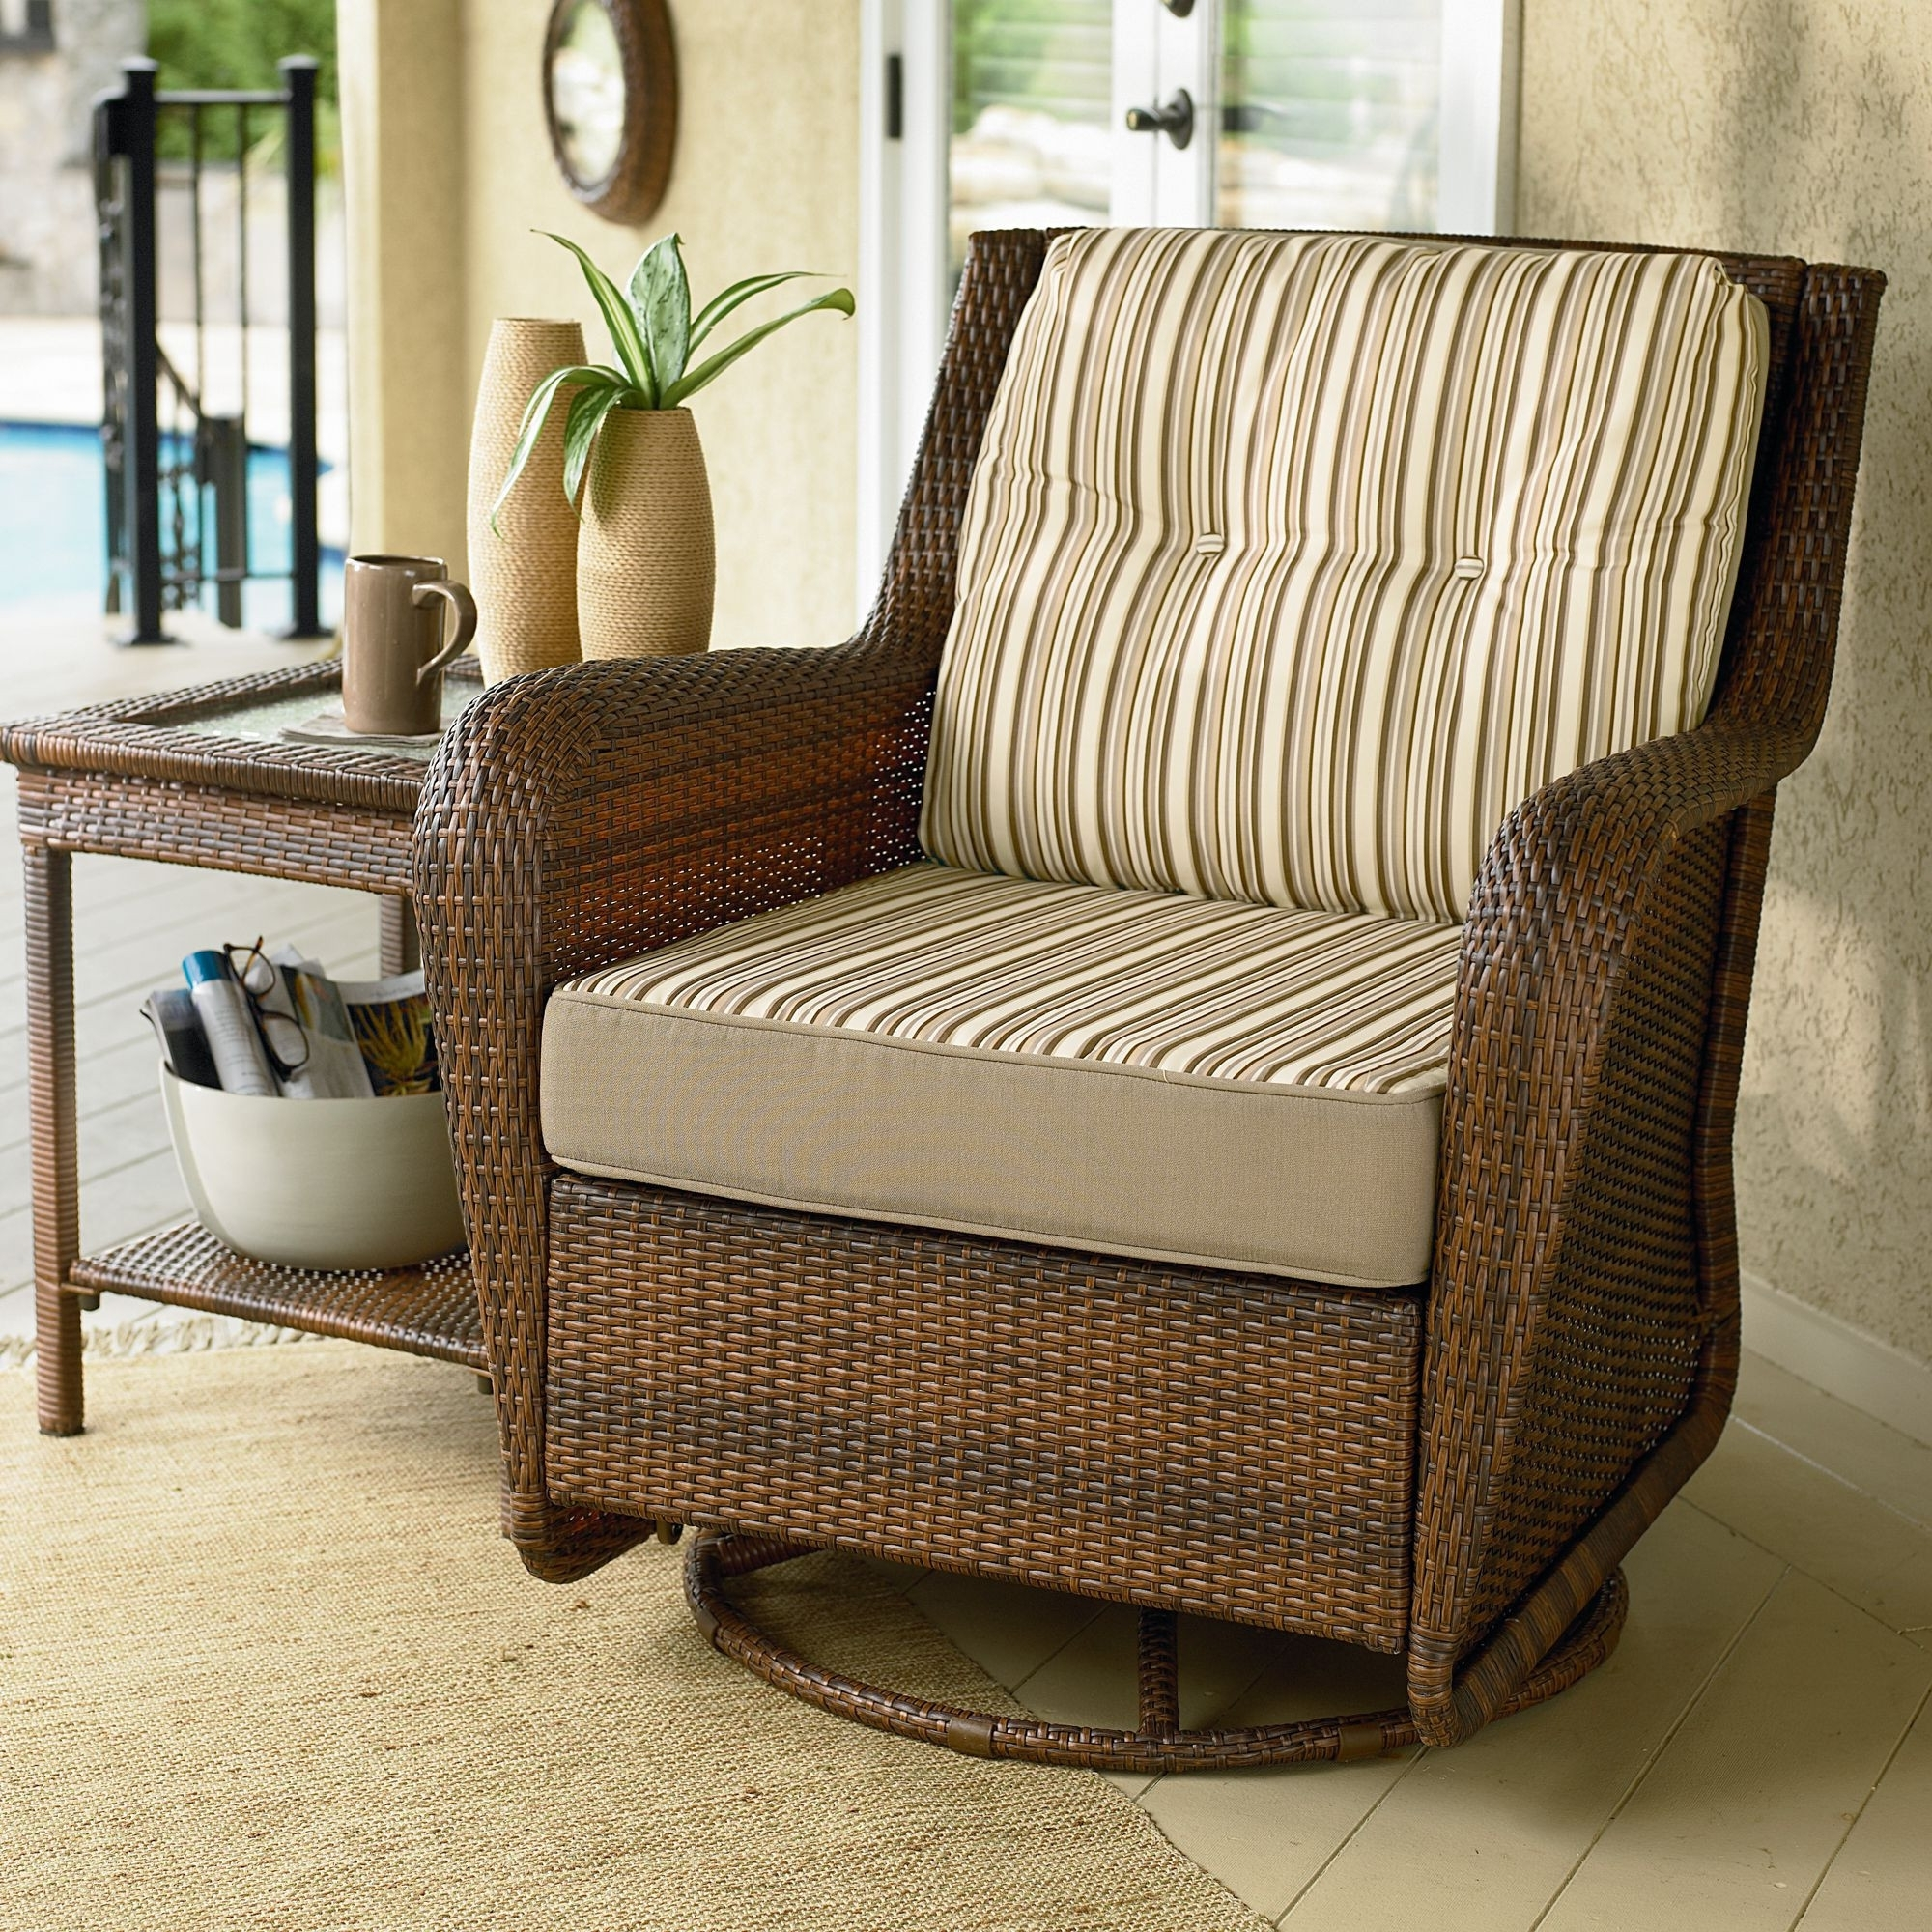 Patio Rocking Chairs And Gliders Regarding Latest Glider Chair For Patio – Decco.voiceoverservices (View 14 of 15)